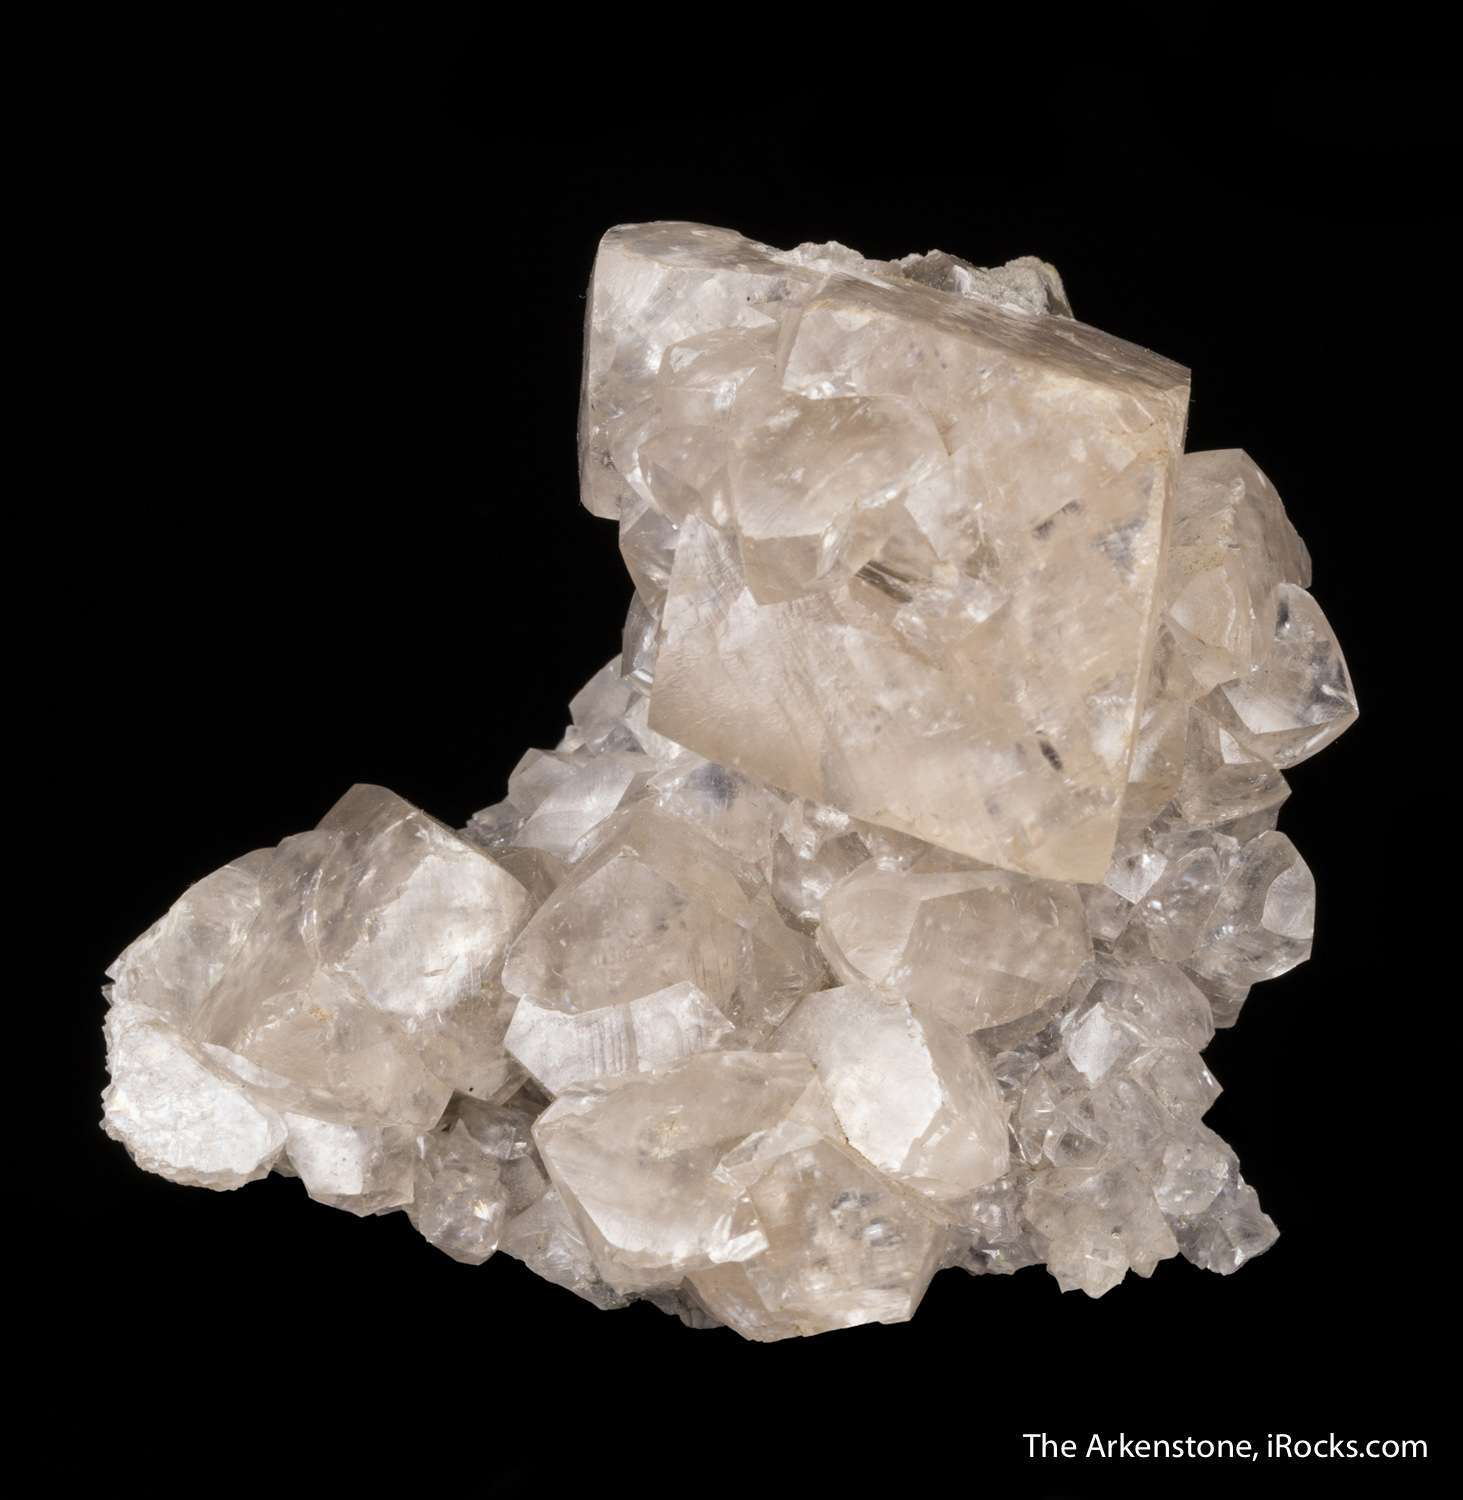 Clustered matrix glassy translucent ivory colored smithsonite crystals